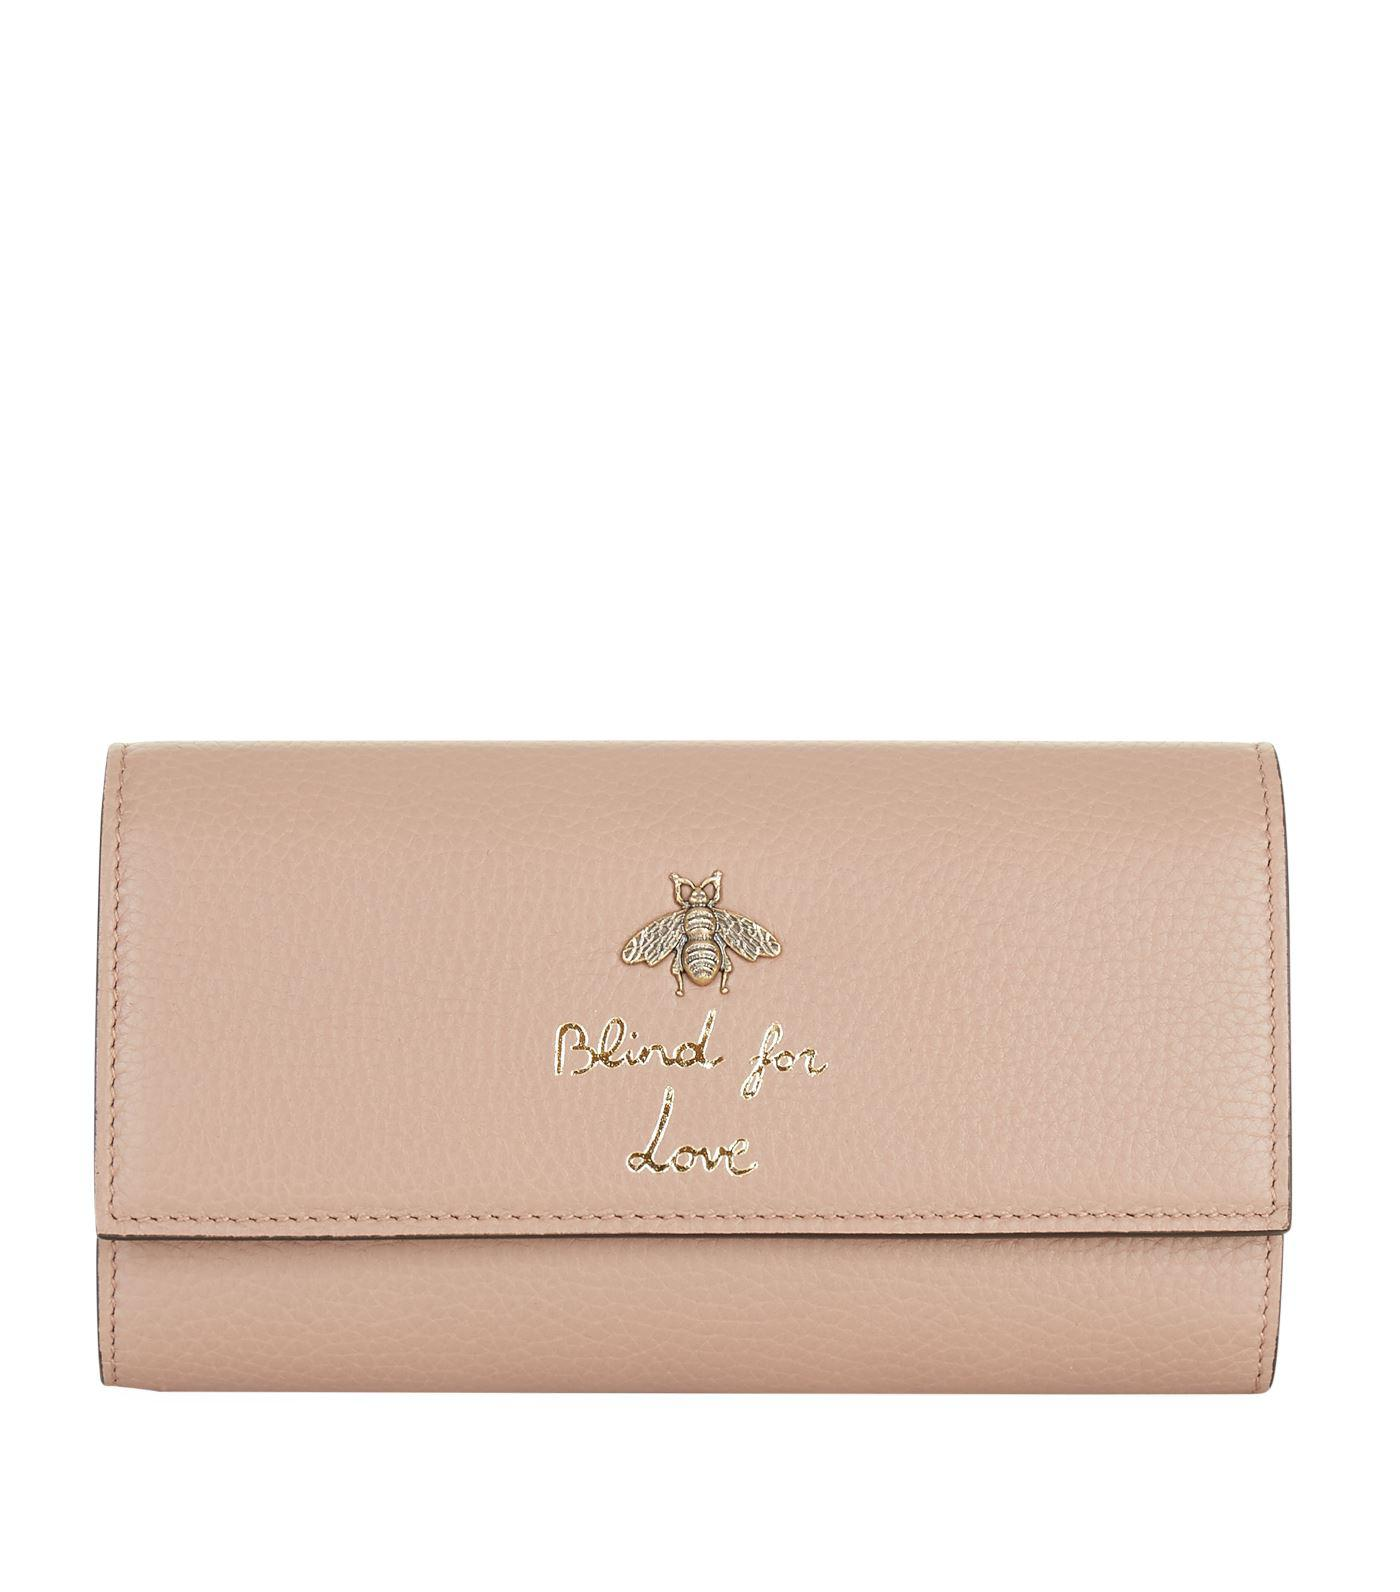 924c54466e0e86 Gucci Blind For Love Bee Wallet in White - Lyst